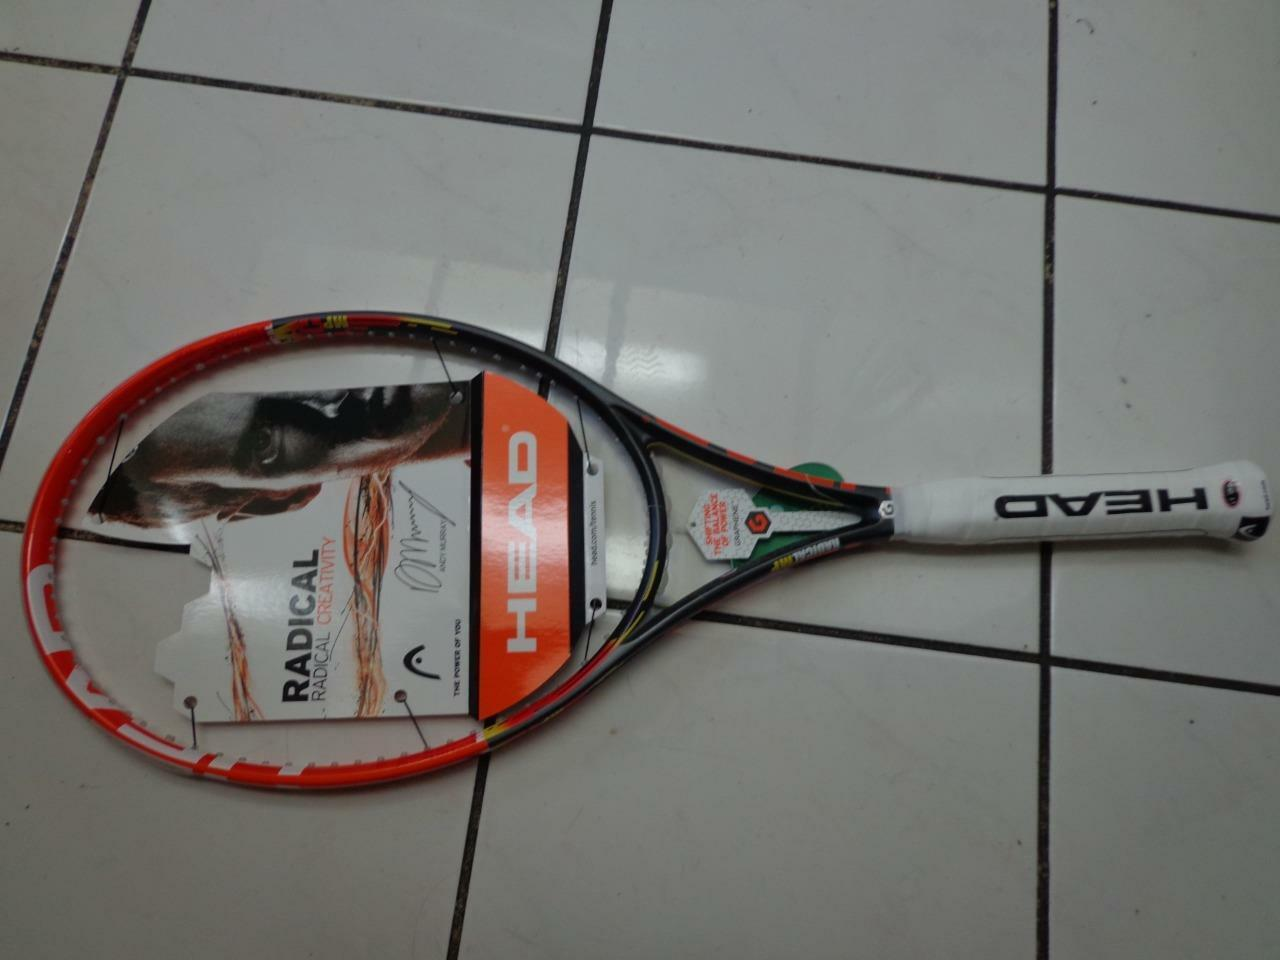 Nuevo Head Graphene Radical 98 16x19 10.4oz 4 1 2 Grip Tenis Raqueta